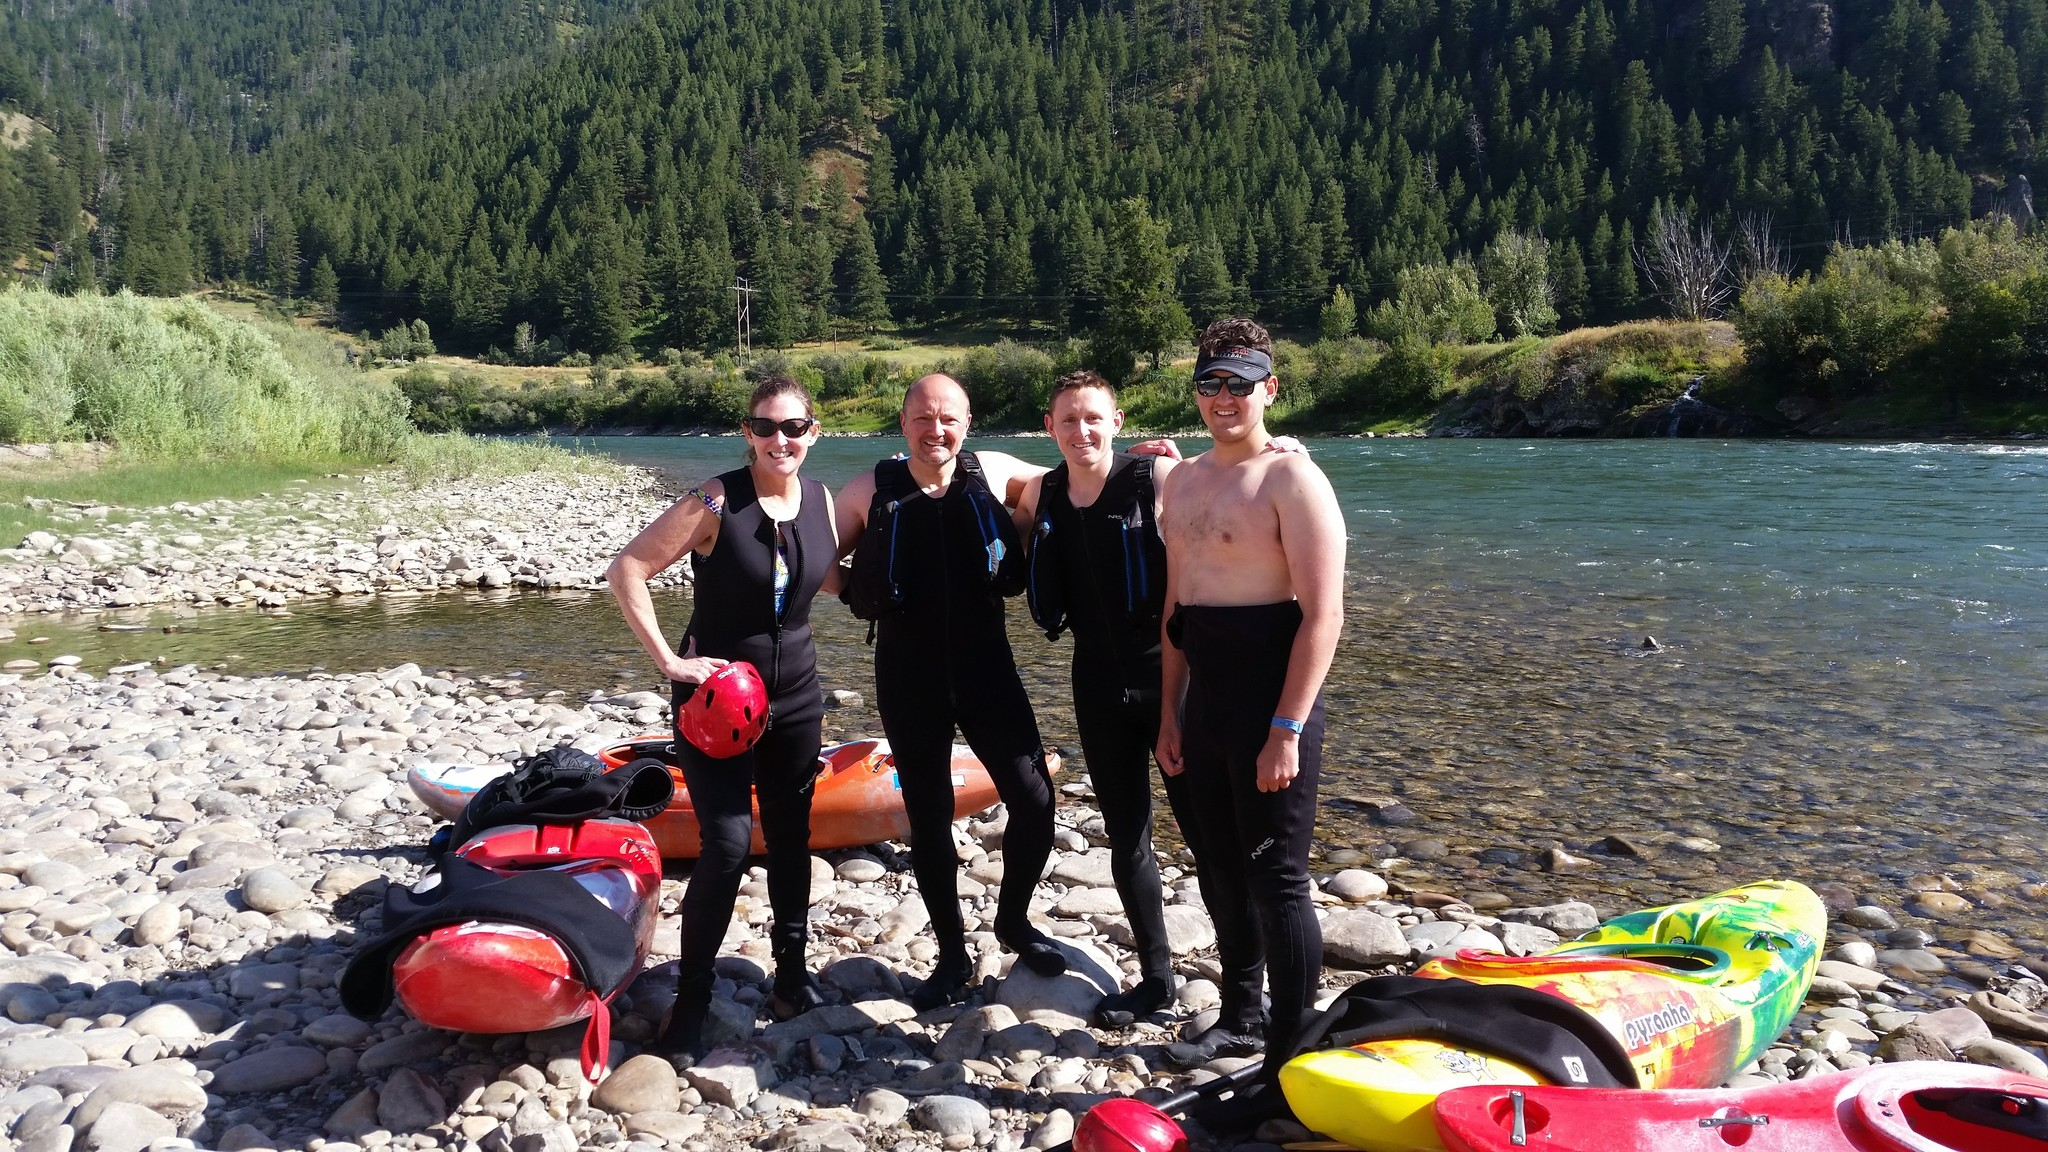 A private whitewater kayaking class on the Snake River